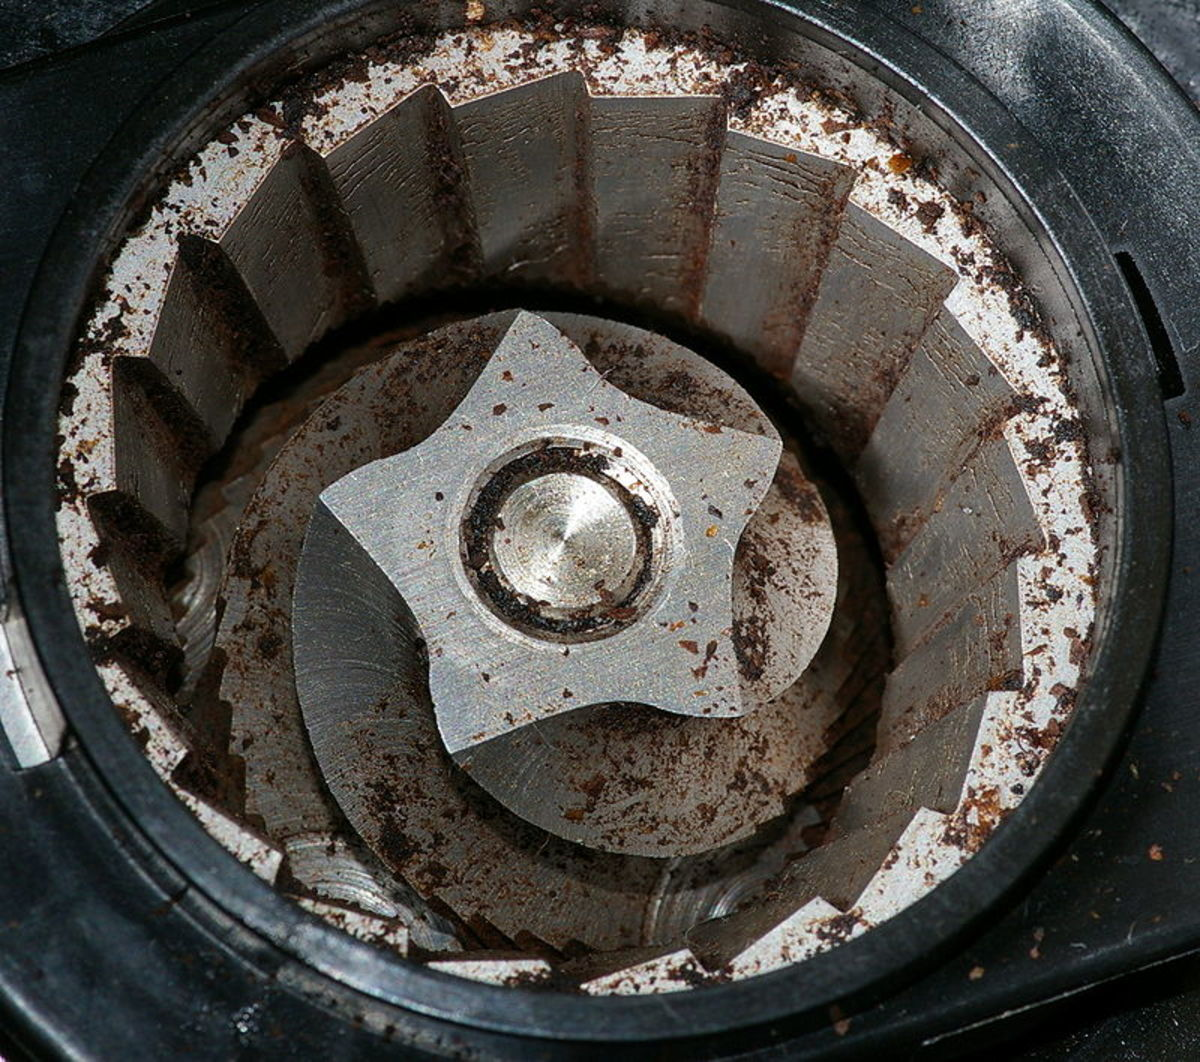 A burr grinder interior.  The bean hopper, which sits on top, has been removed in order to see inside.  The coffee beans are crushed and torn, rather than chopped, meaning that very little heat is generated.